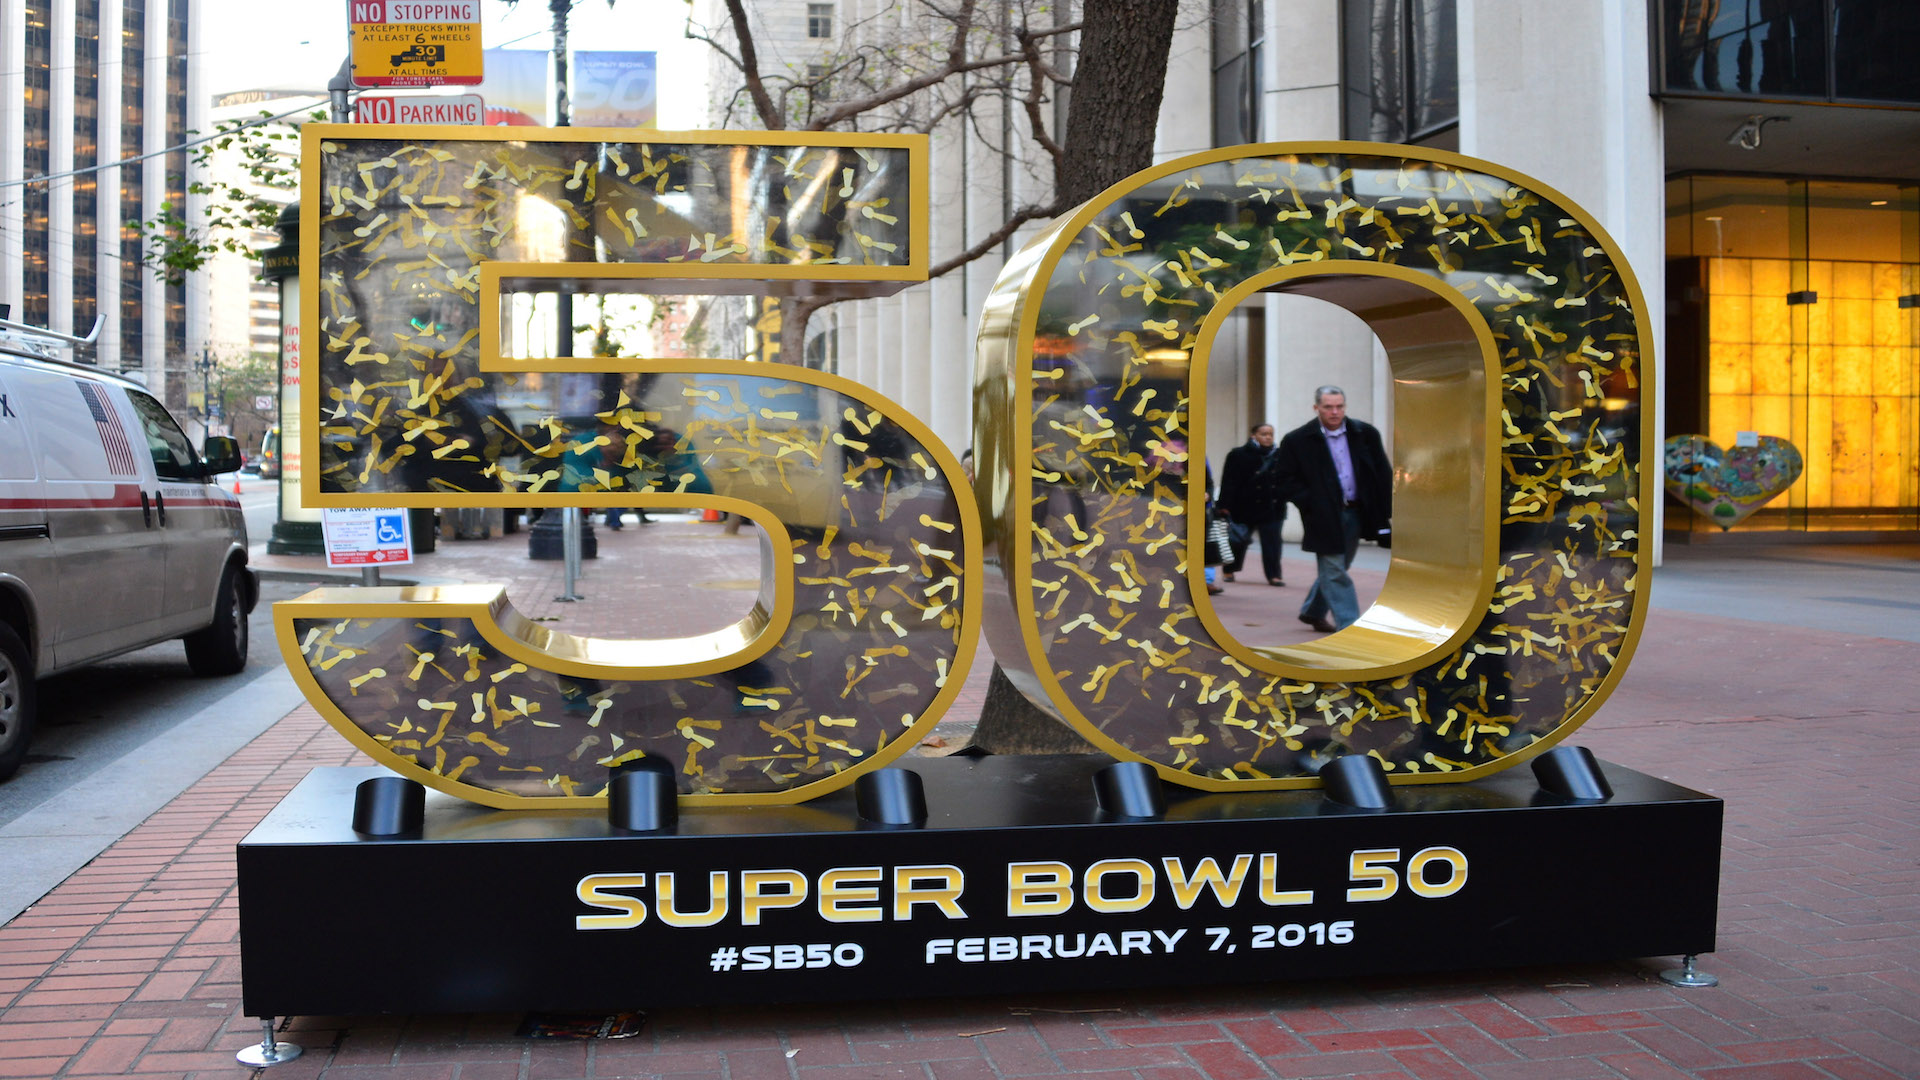 The Super Bowl and the stock market